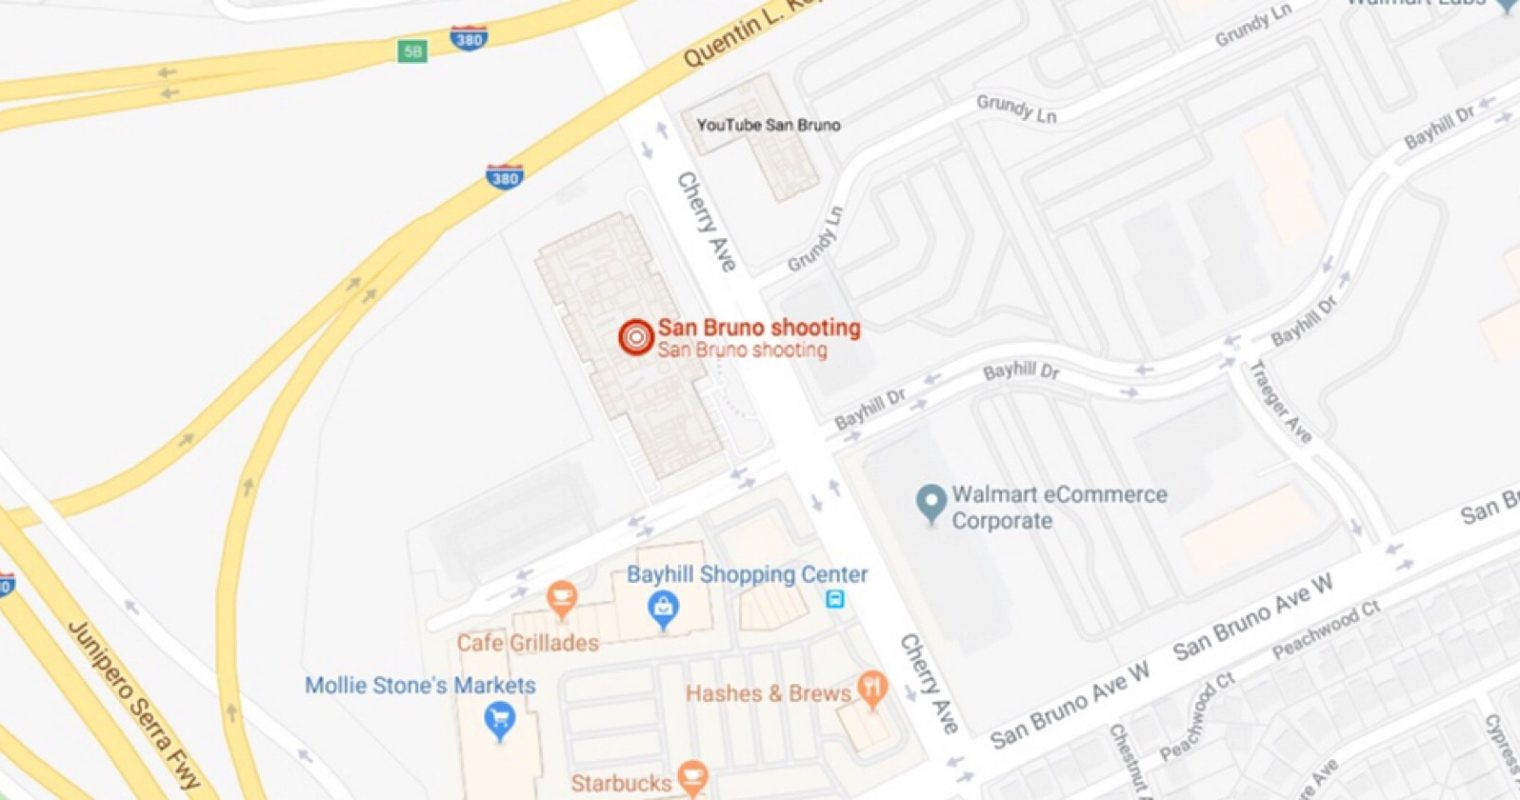 Google Maps Now Highlights Locations of Active Shootings